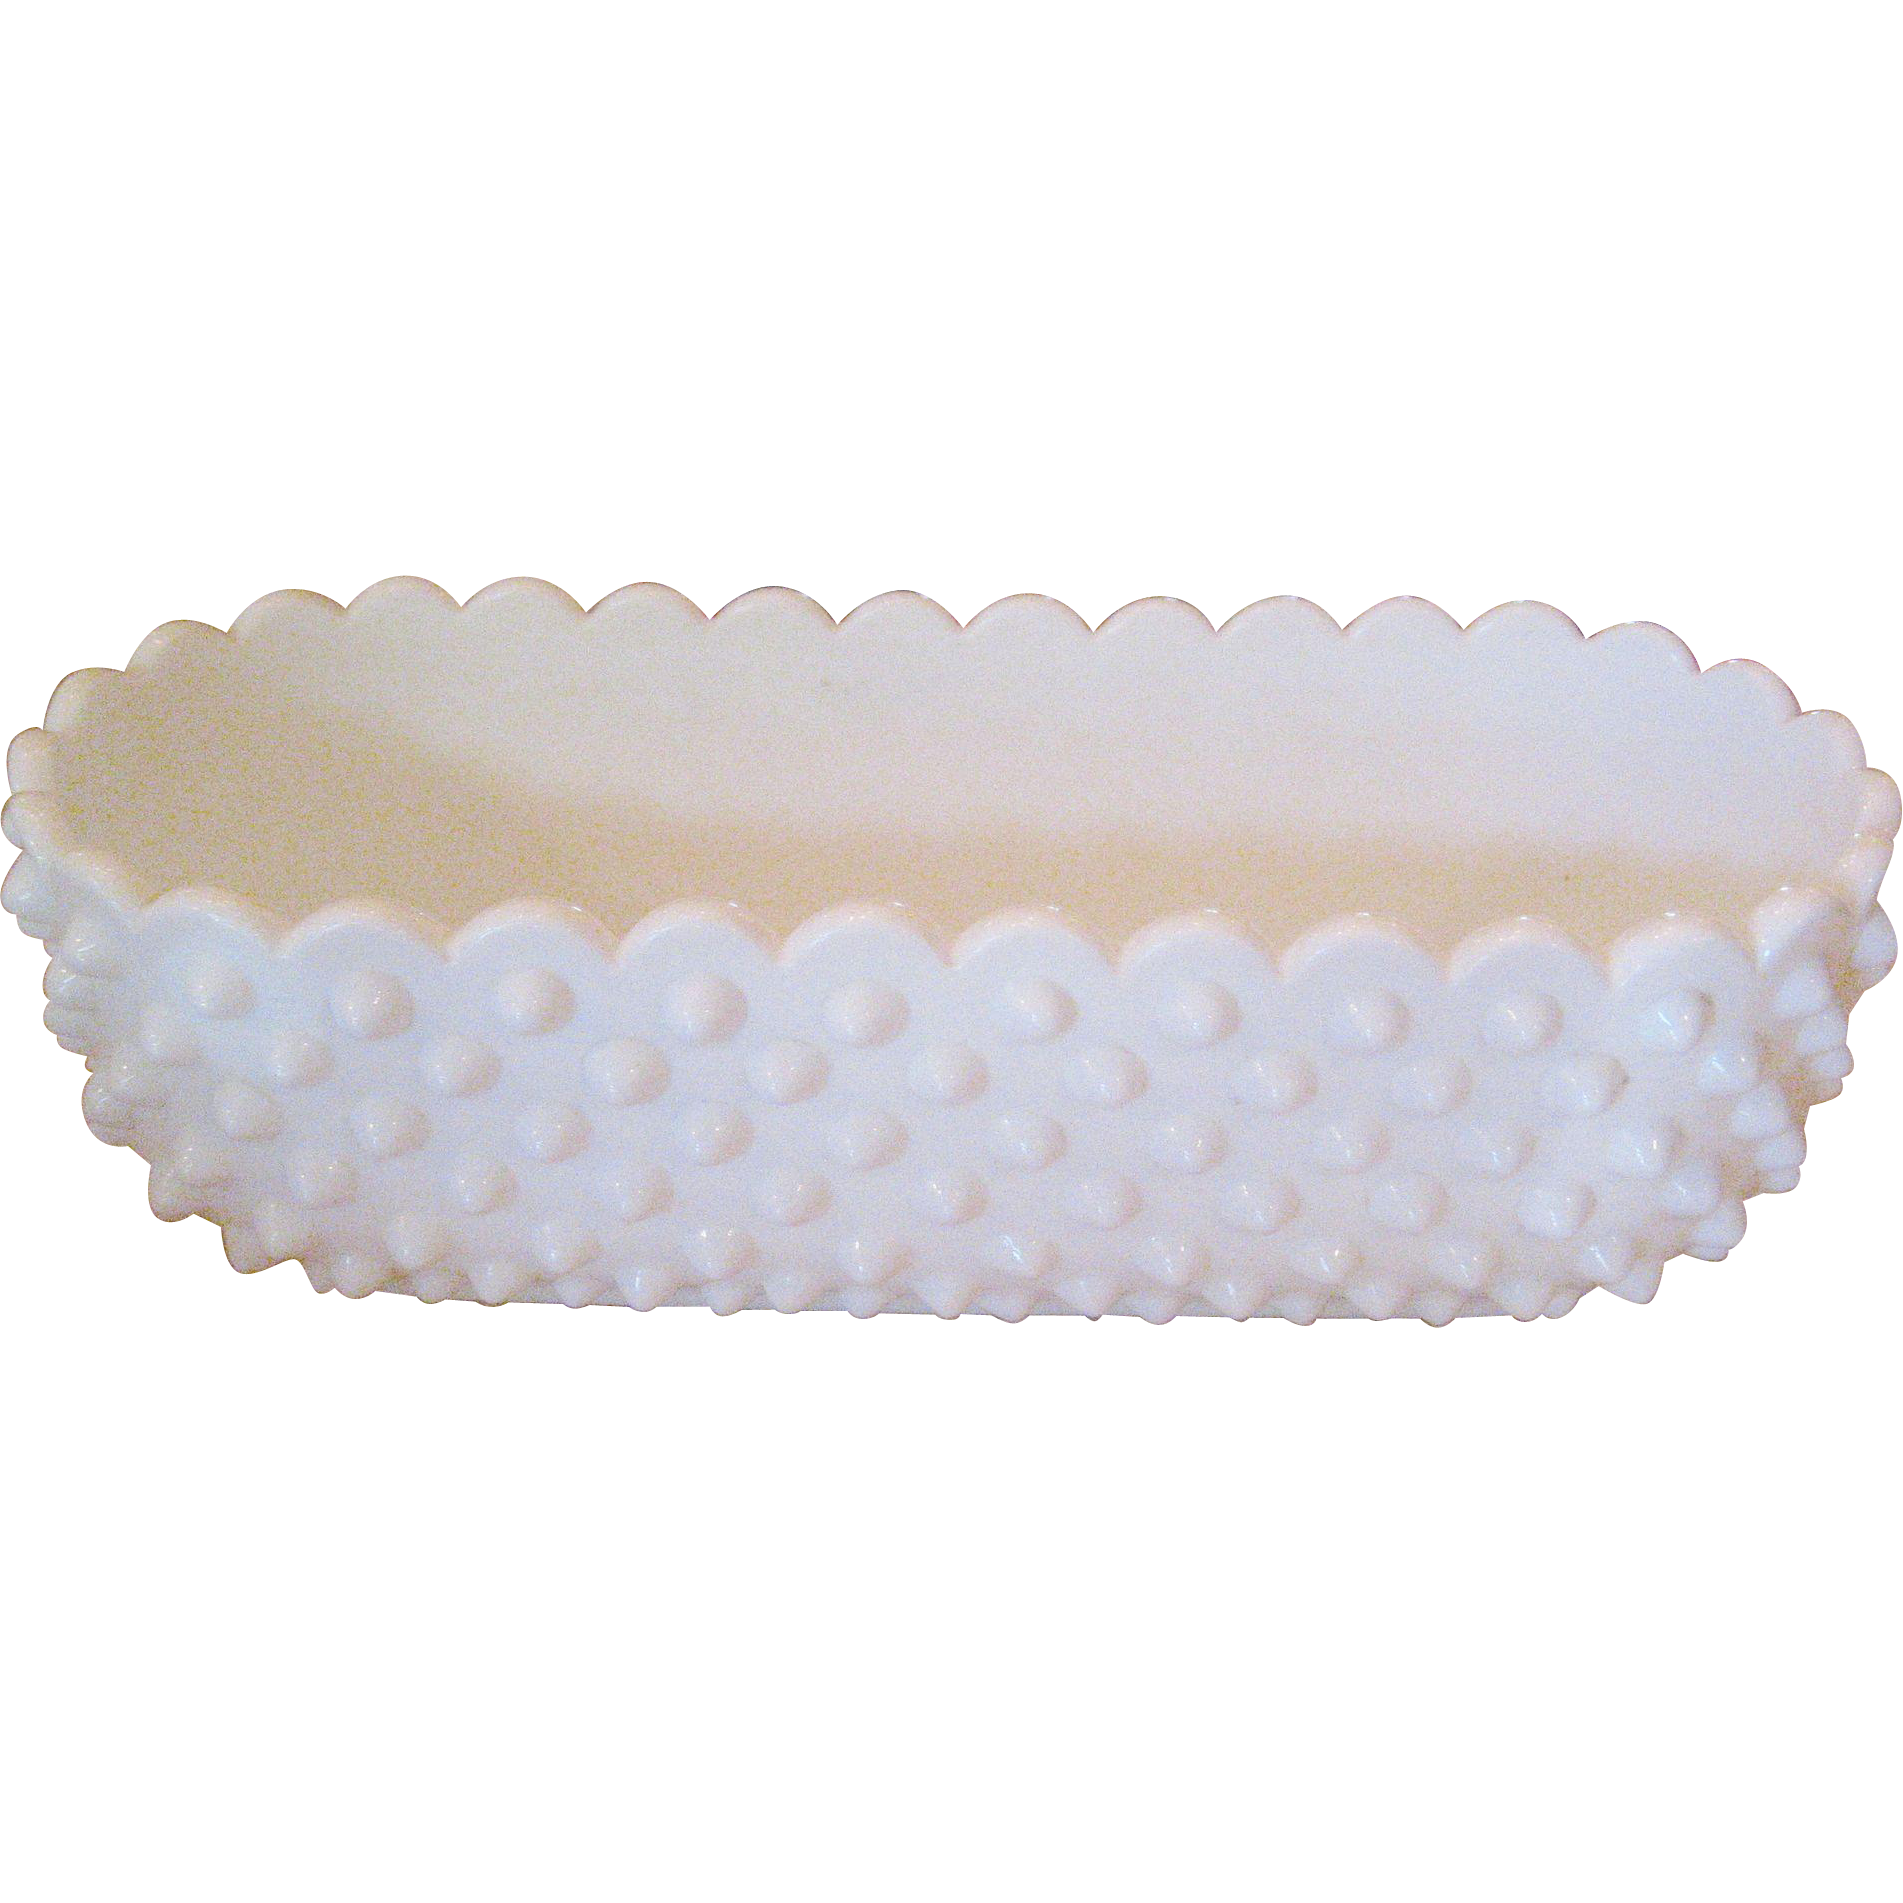 Fenton White Hobnail Oval Planter